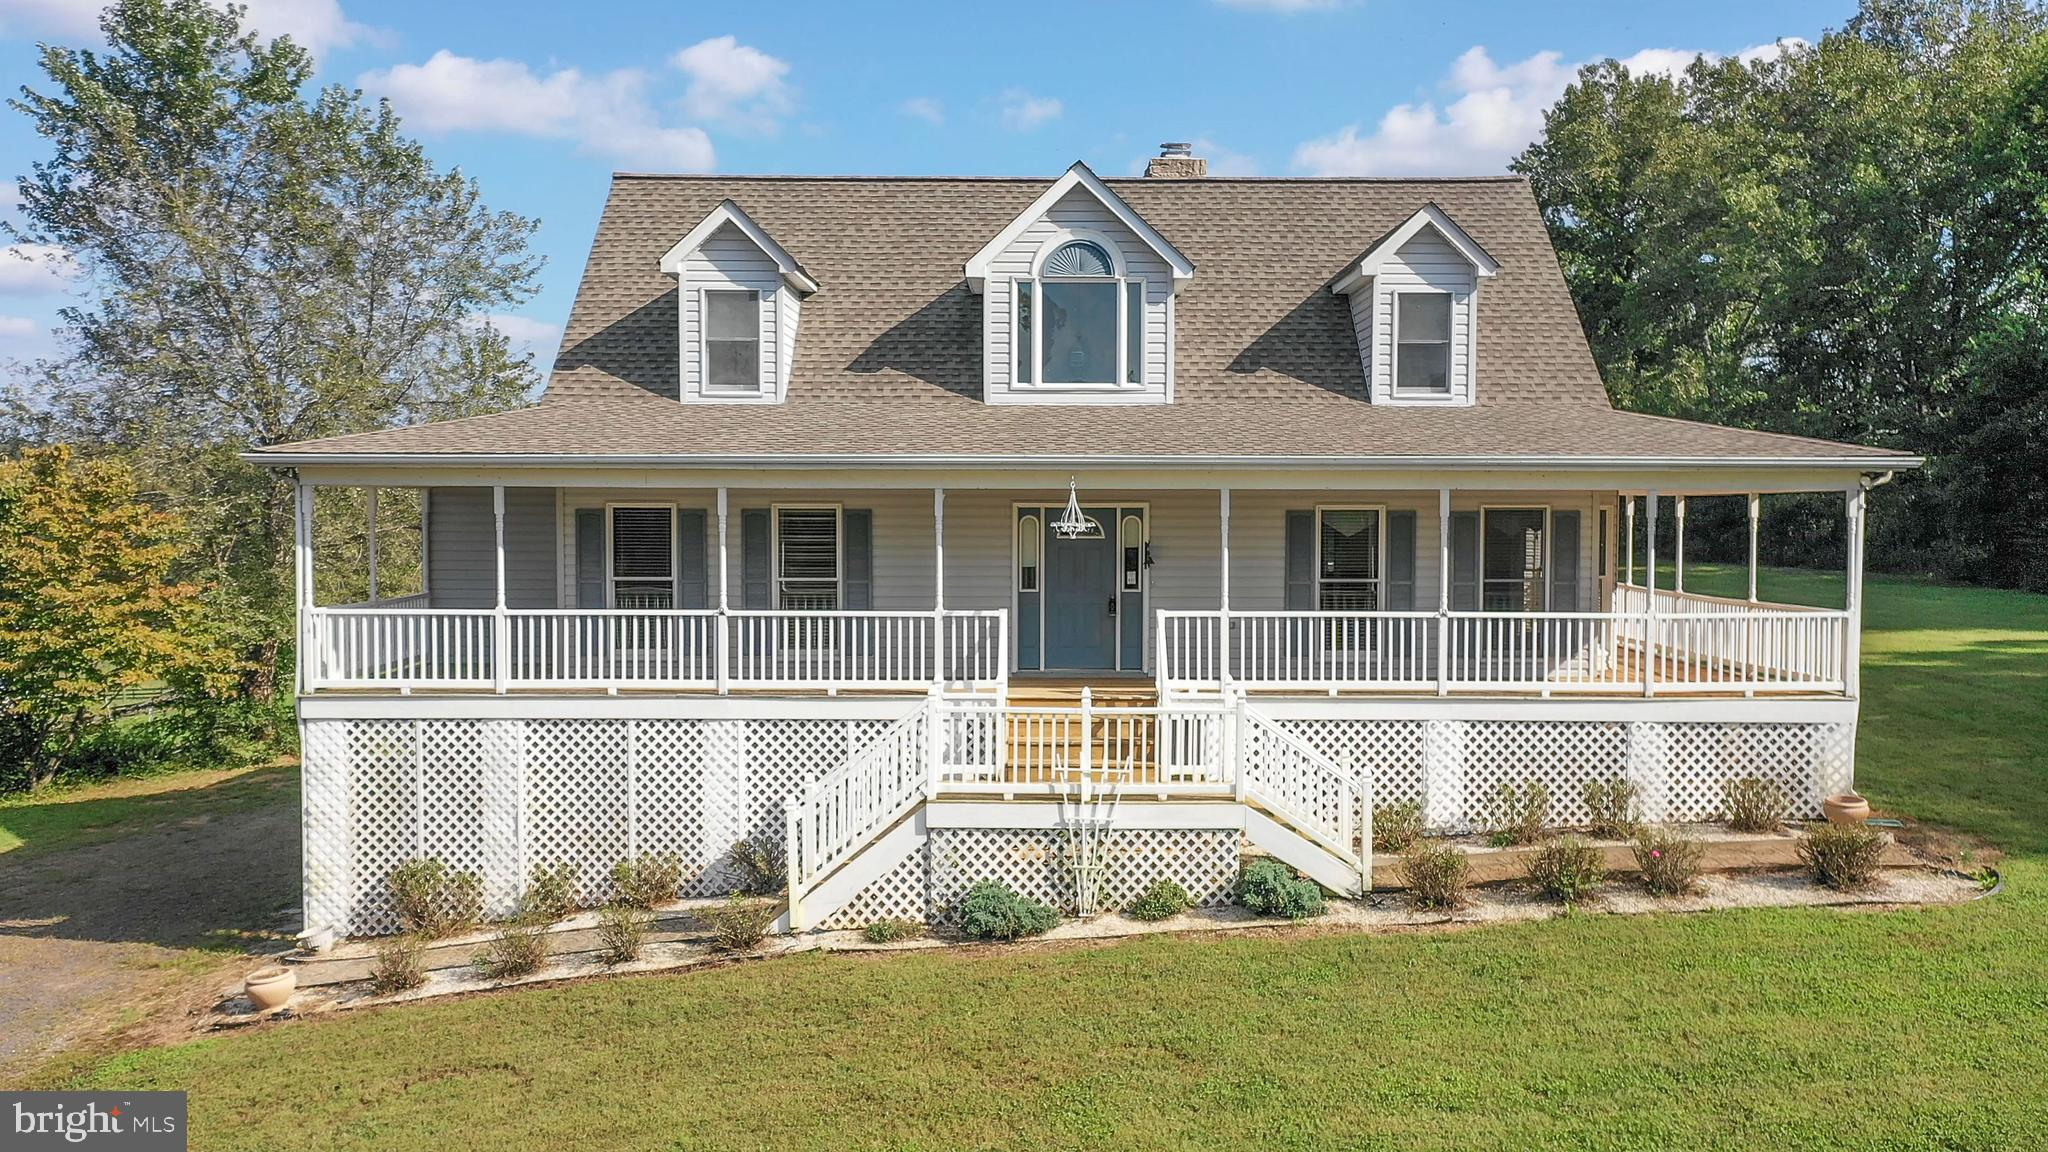 16317 NANZATICO LANE, KING GEORGE, VA 22485